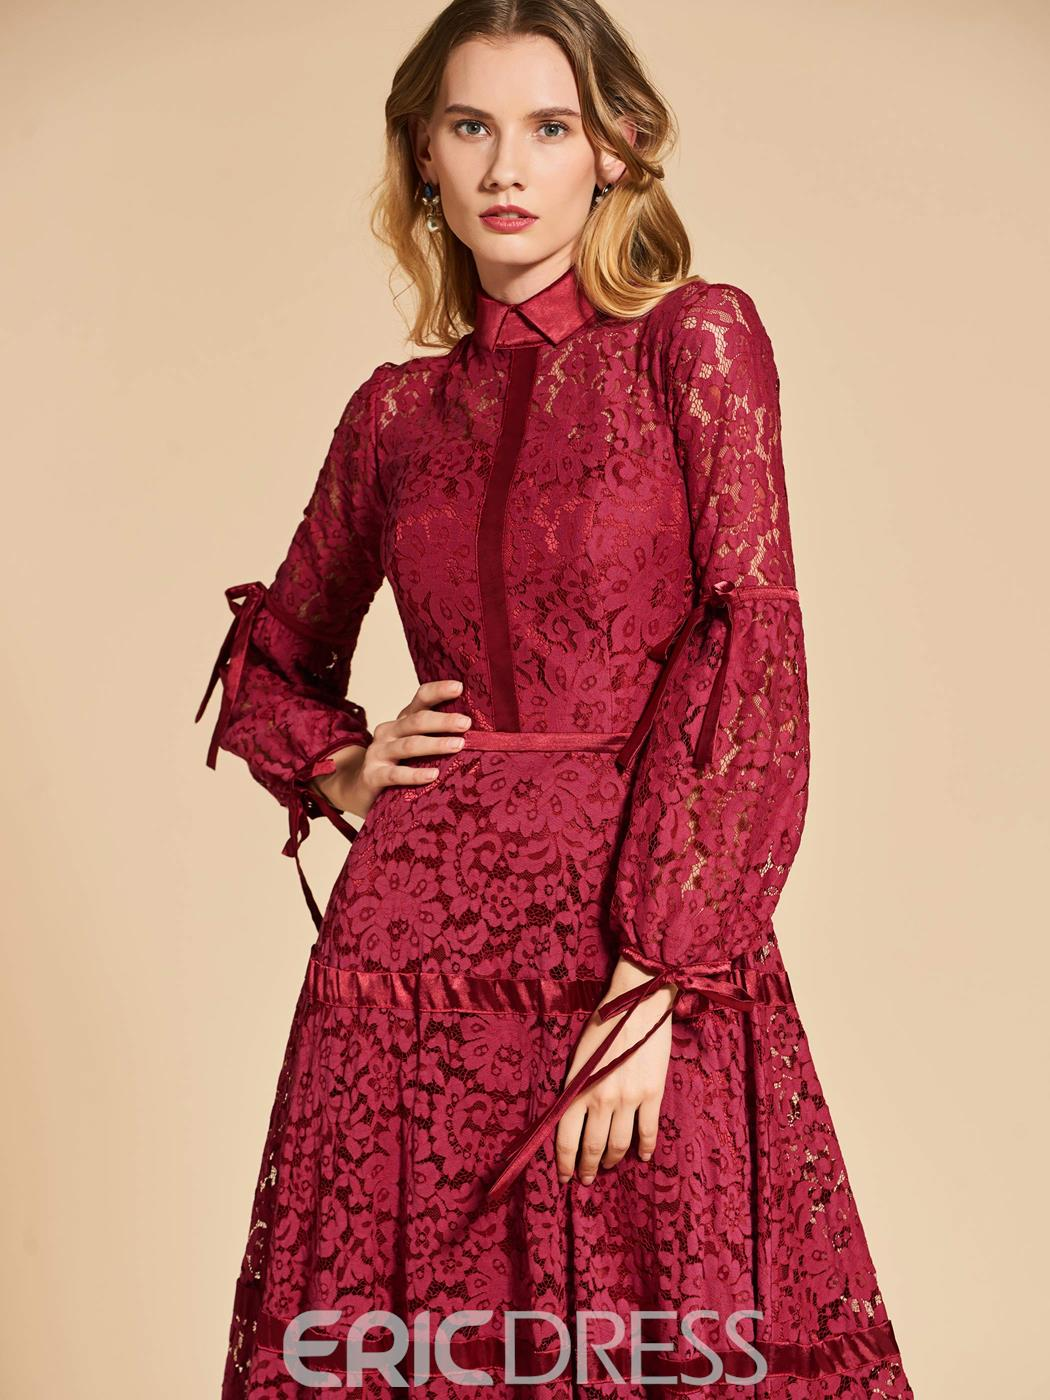 Ericdress A Line 3/4 Sleeve High Neck Vintage Lace Evening Dress